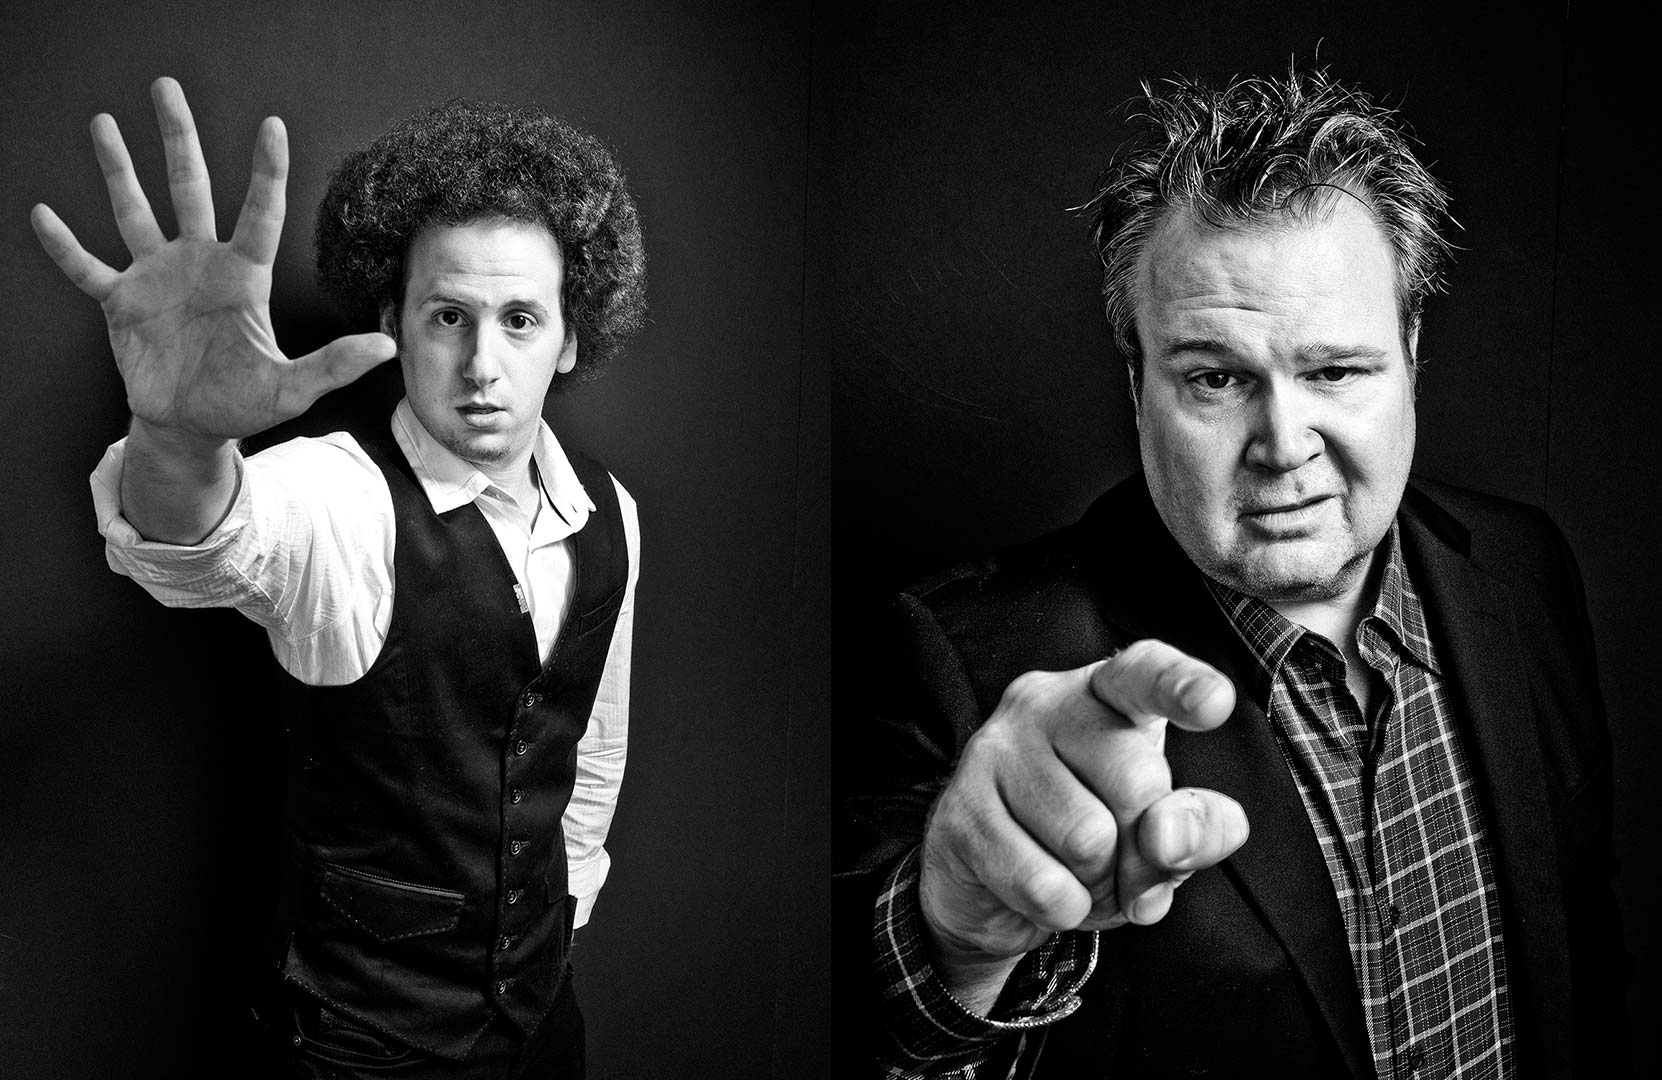 Josh Sussman And Eric Stonestreet Portrait Photographers